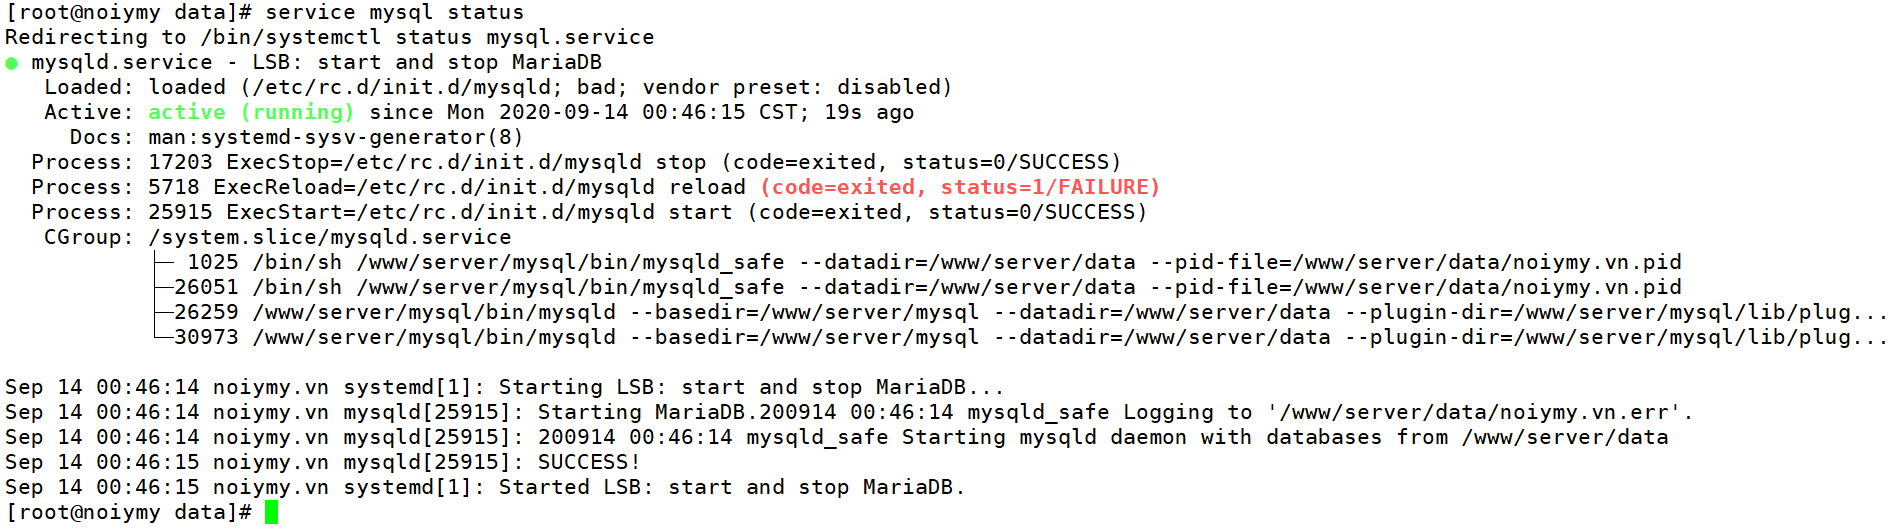 Aria engine is not enabled or did not start